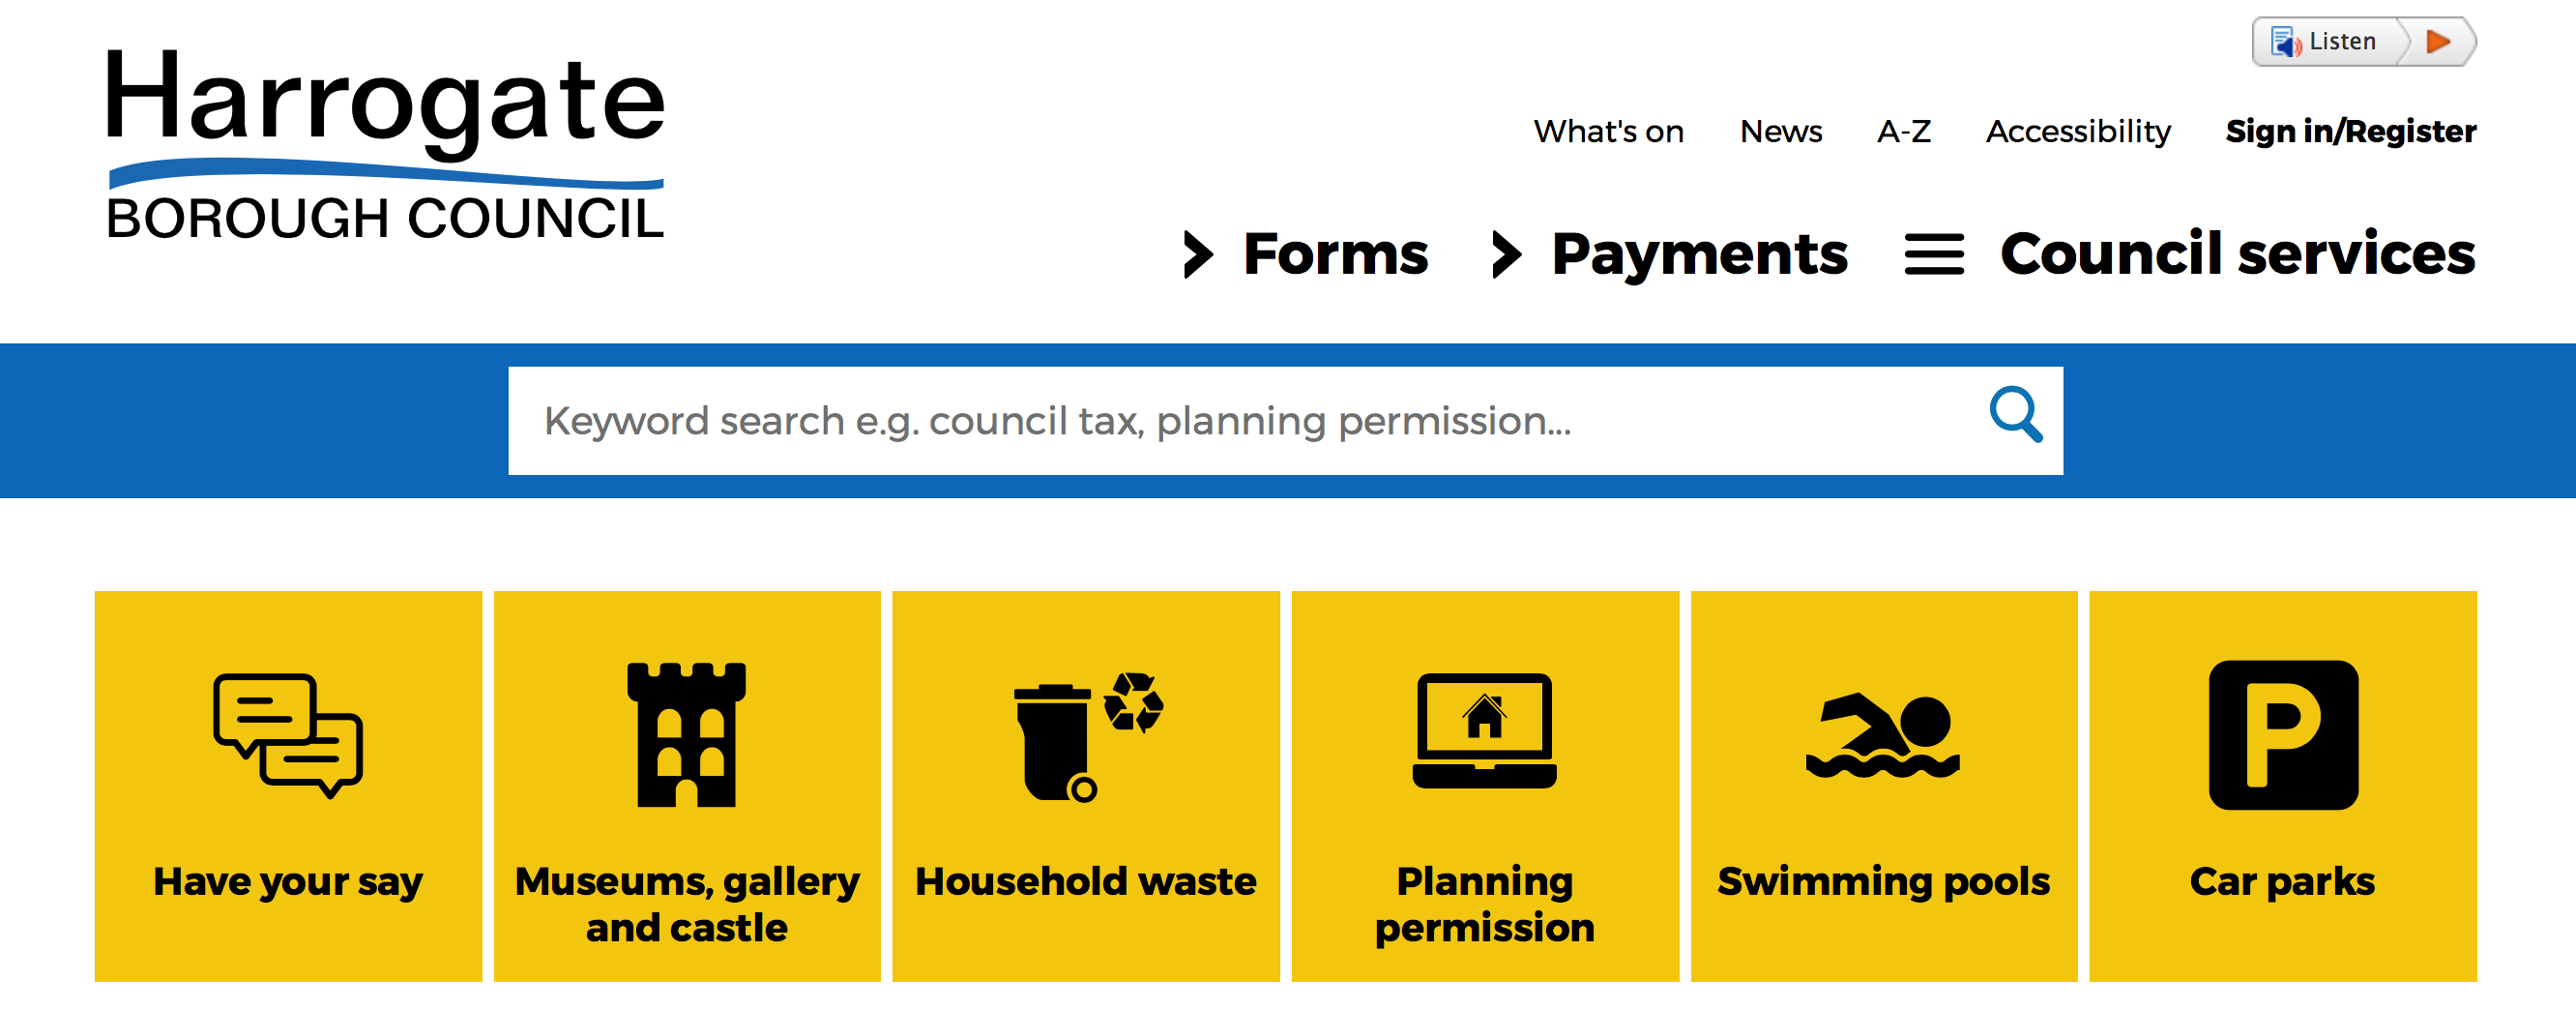 Screenshot of Harrogate Borough Council Homepage